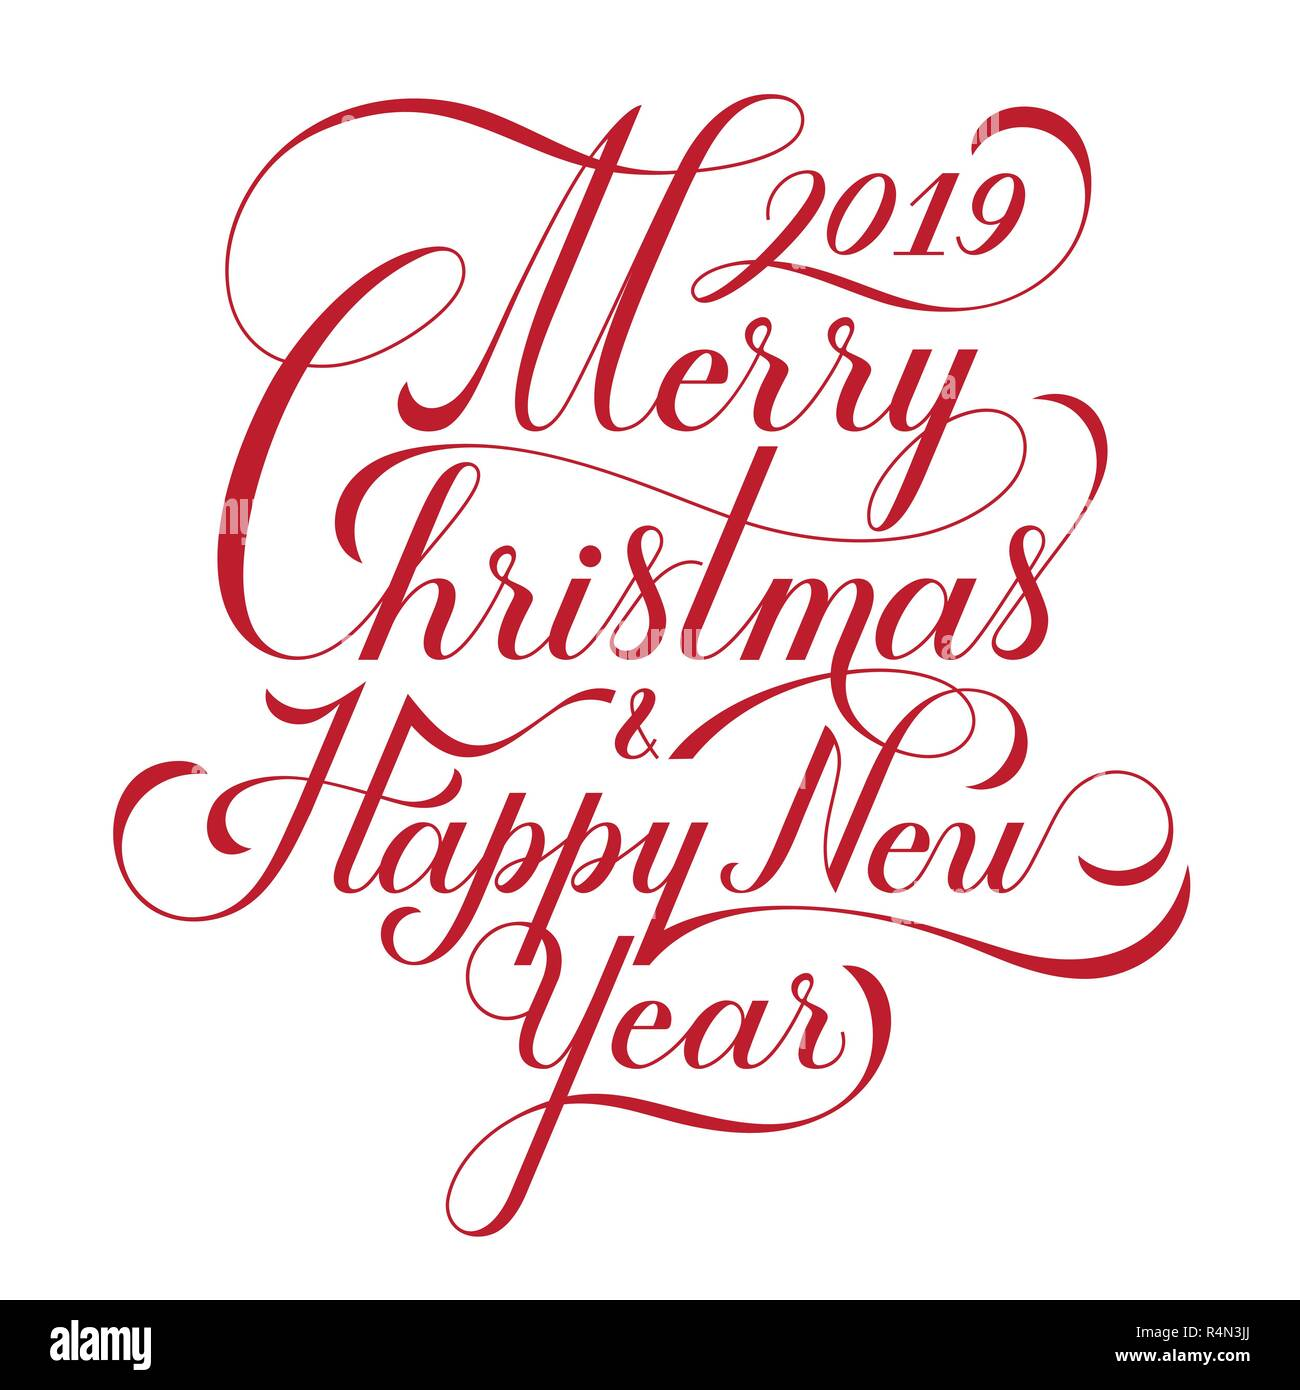 Merry Christmas Text.Merry Christmas And Happy New Year Text Calligraphic